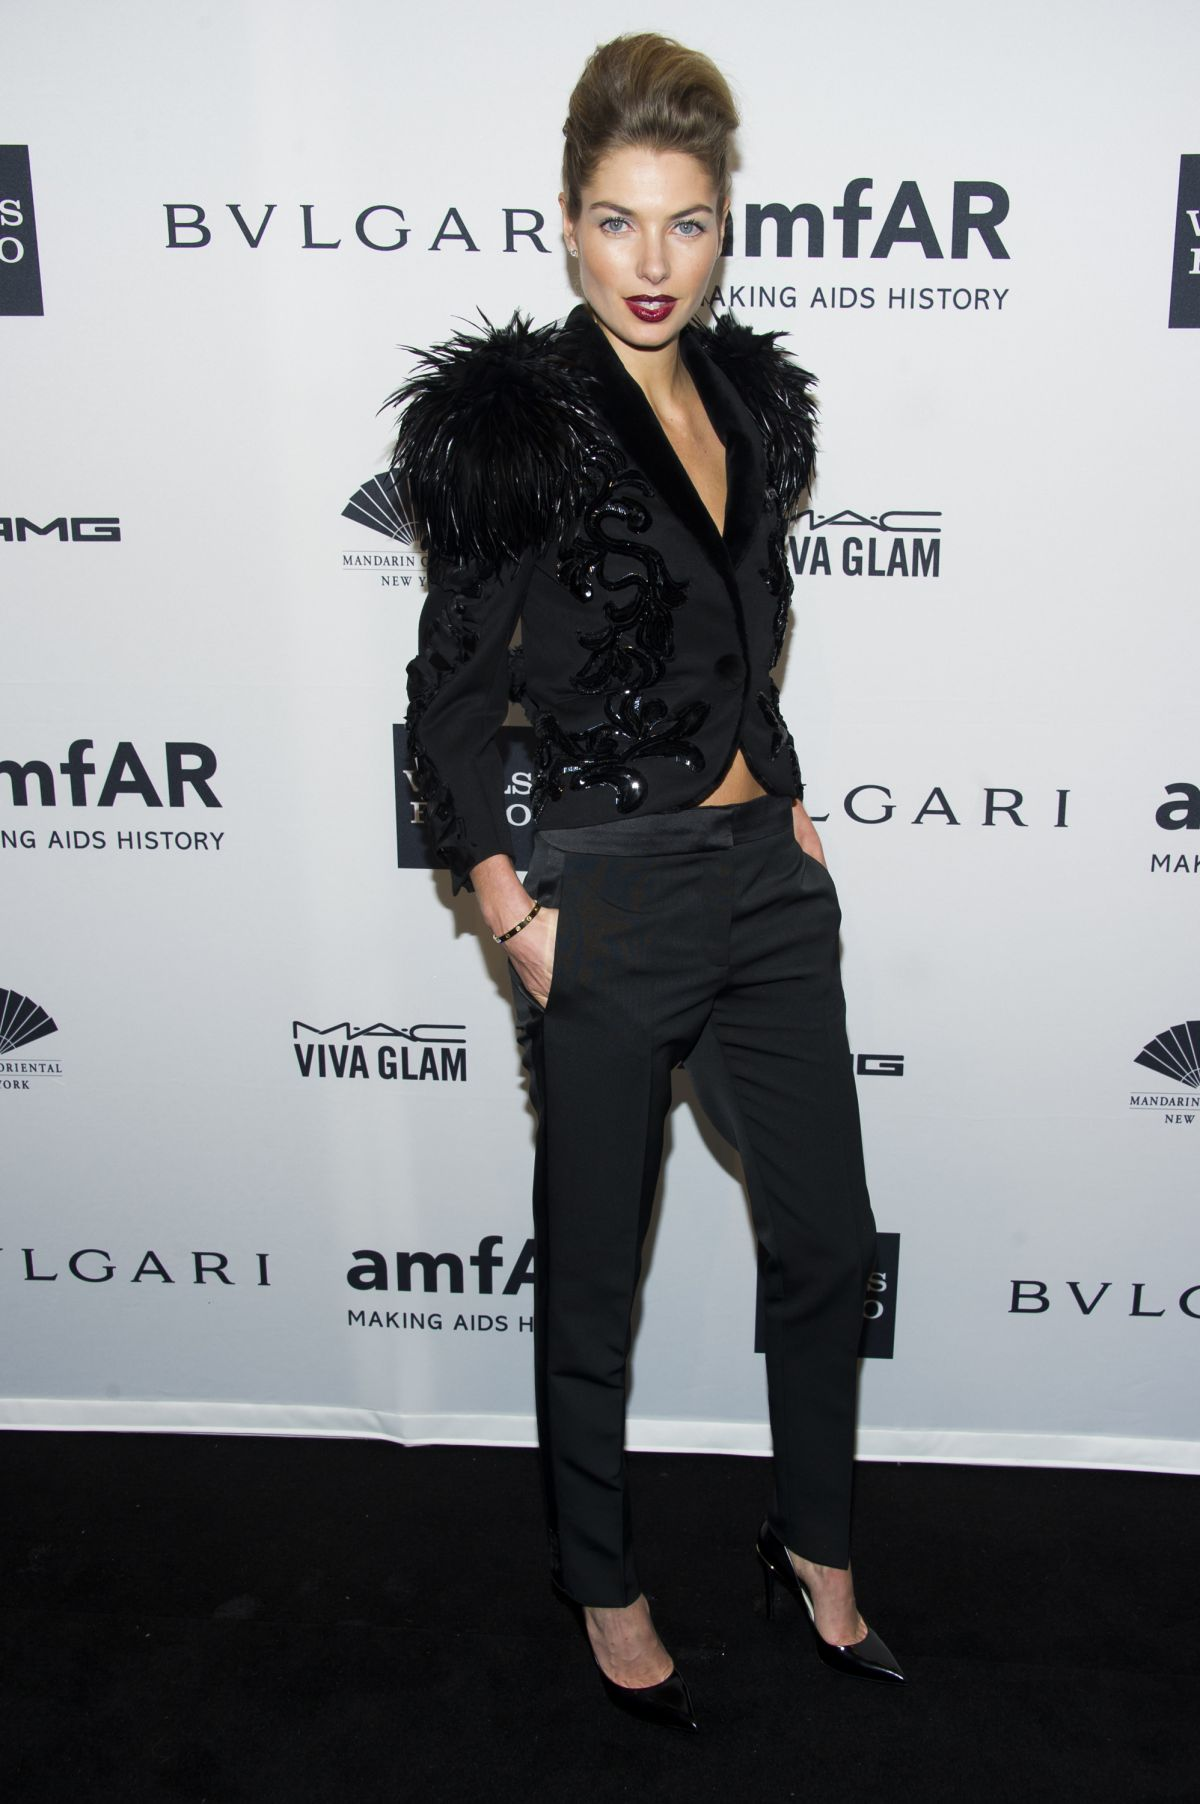 JESSICA HART at 2014 AMFAR Gala in New York